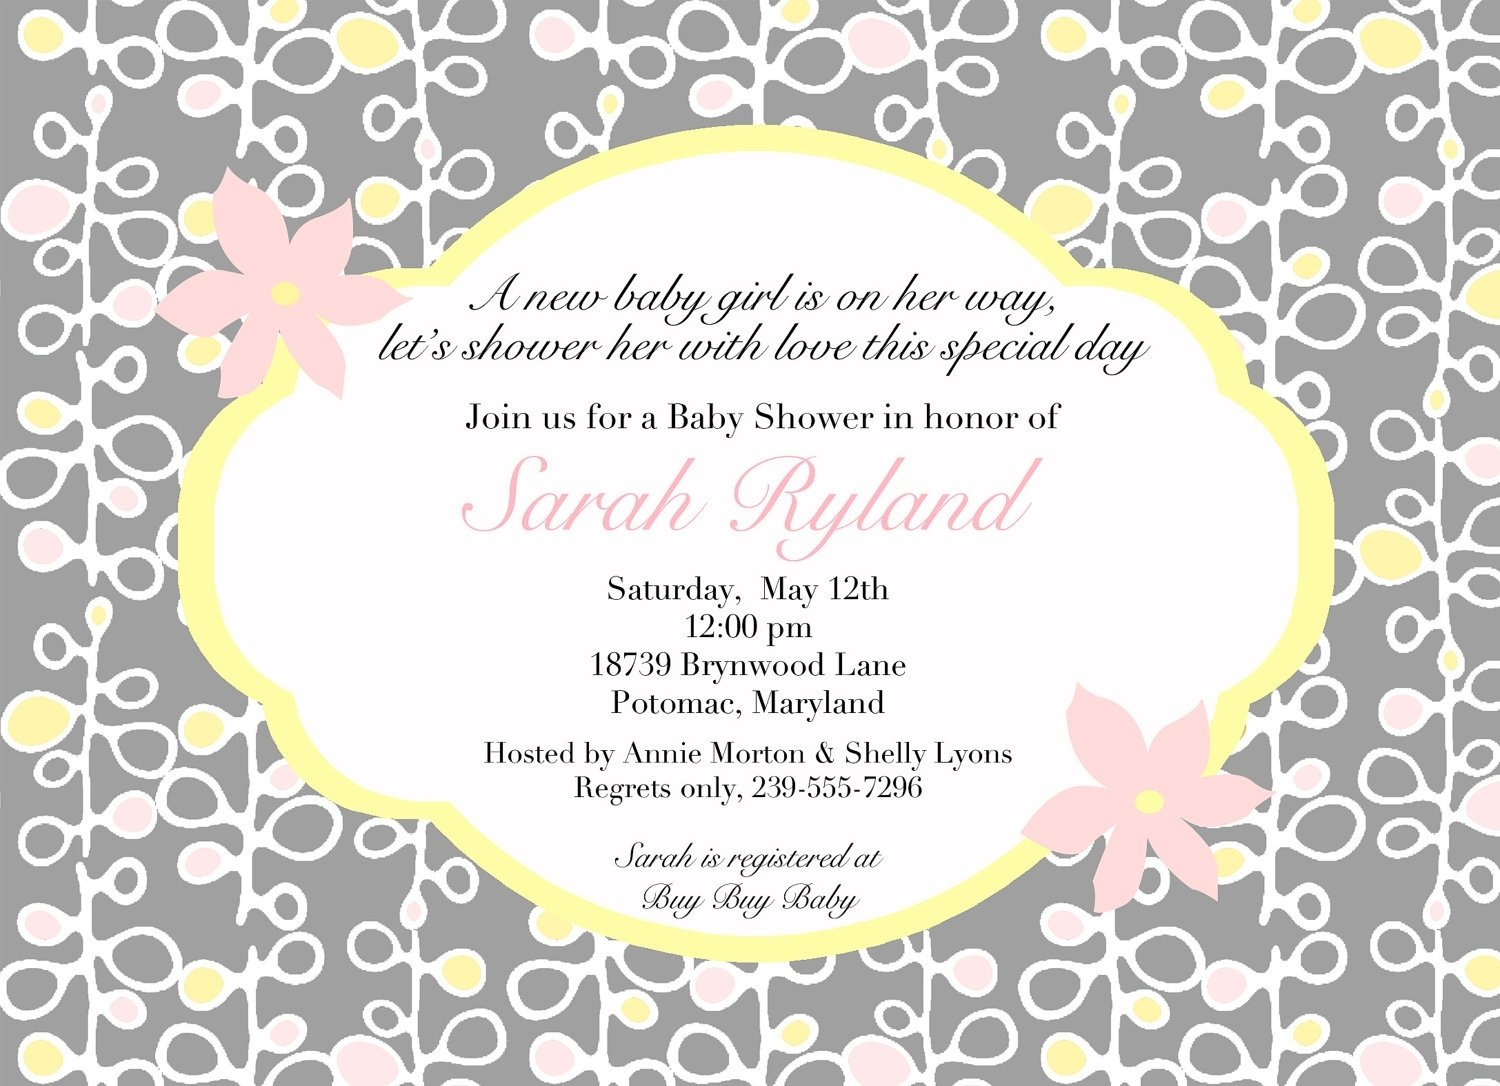 baby shower invitation wording ideas plus cute inexpensive baby